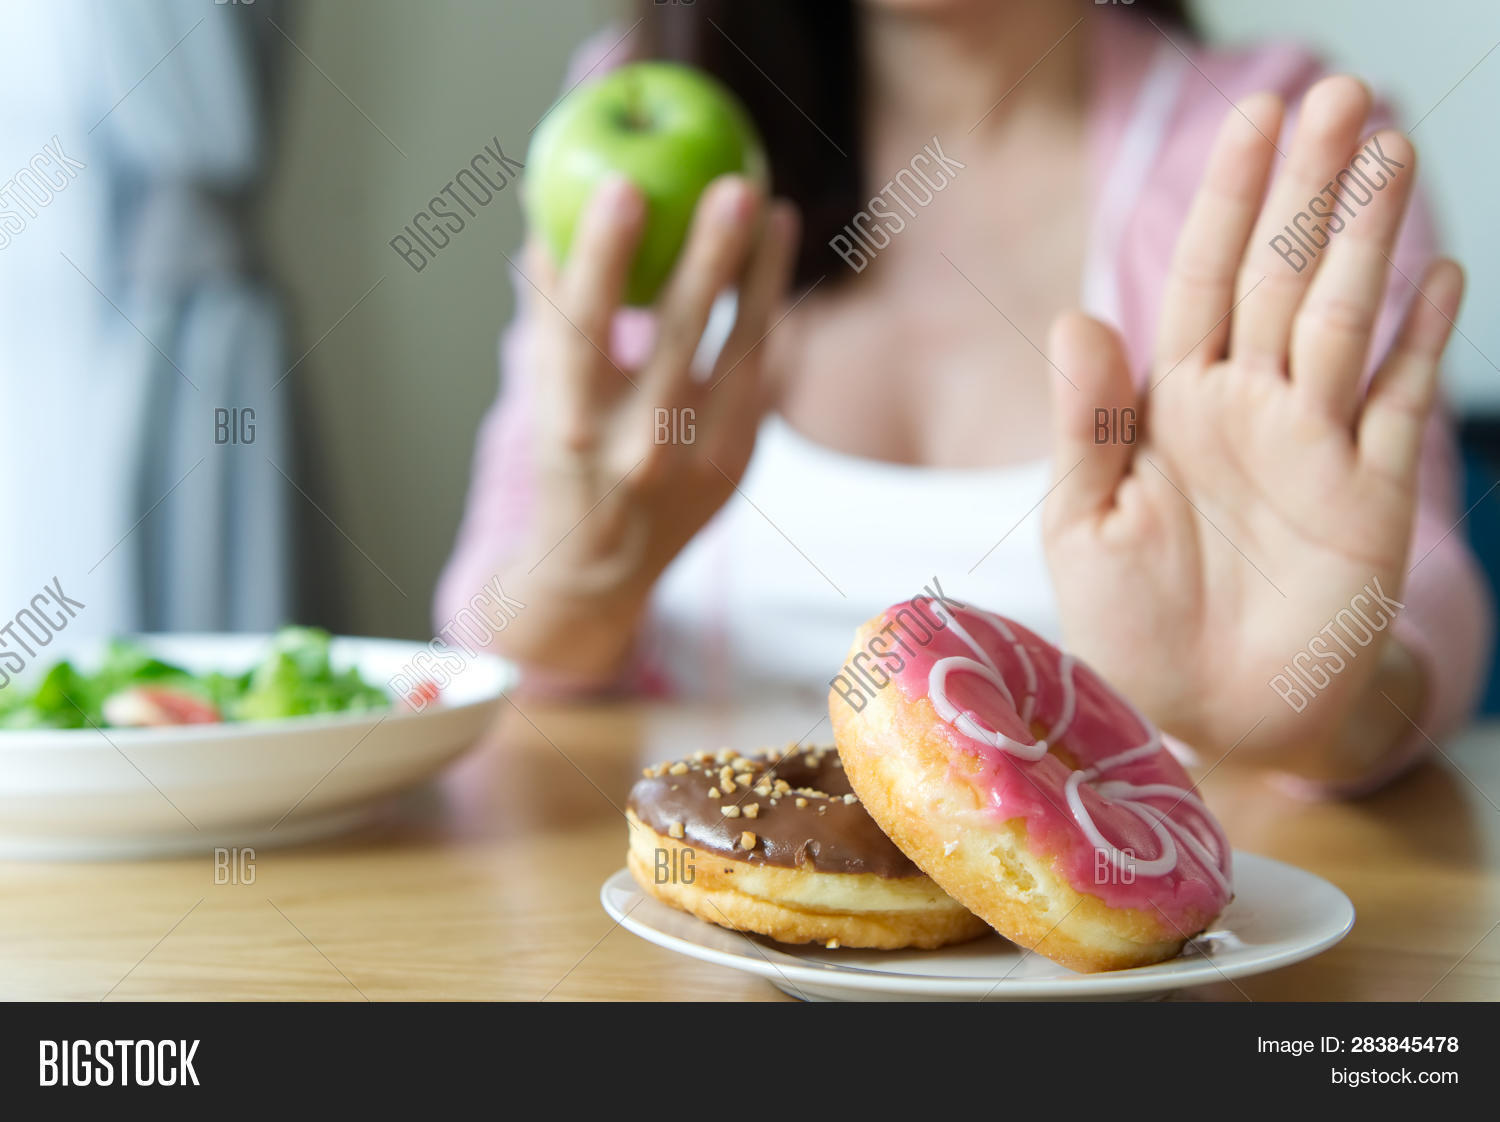 Young Girl Rejecting Junk Food Or Unhealthy Food Such As Donuts And Choosing Healthy Food Such As A